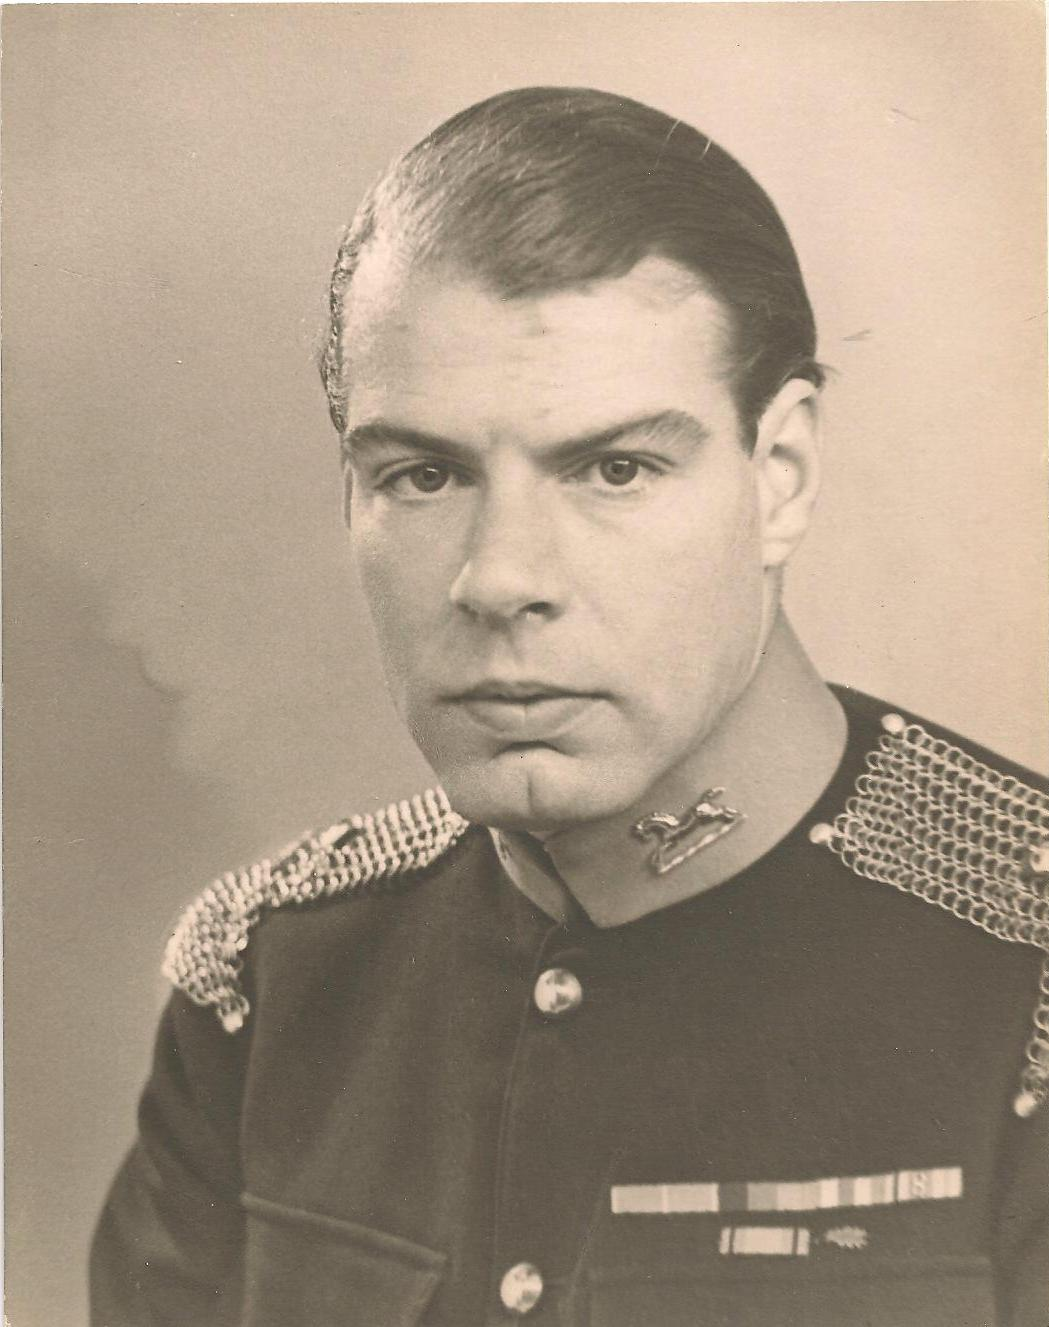 269 - 1946 Henrik Major 3rd KOH beskåret.jpg